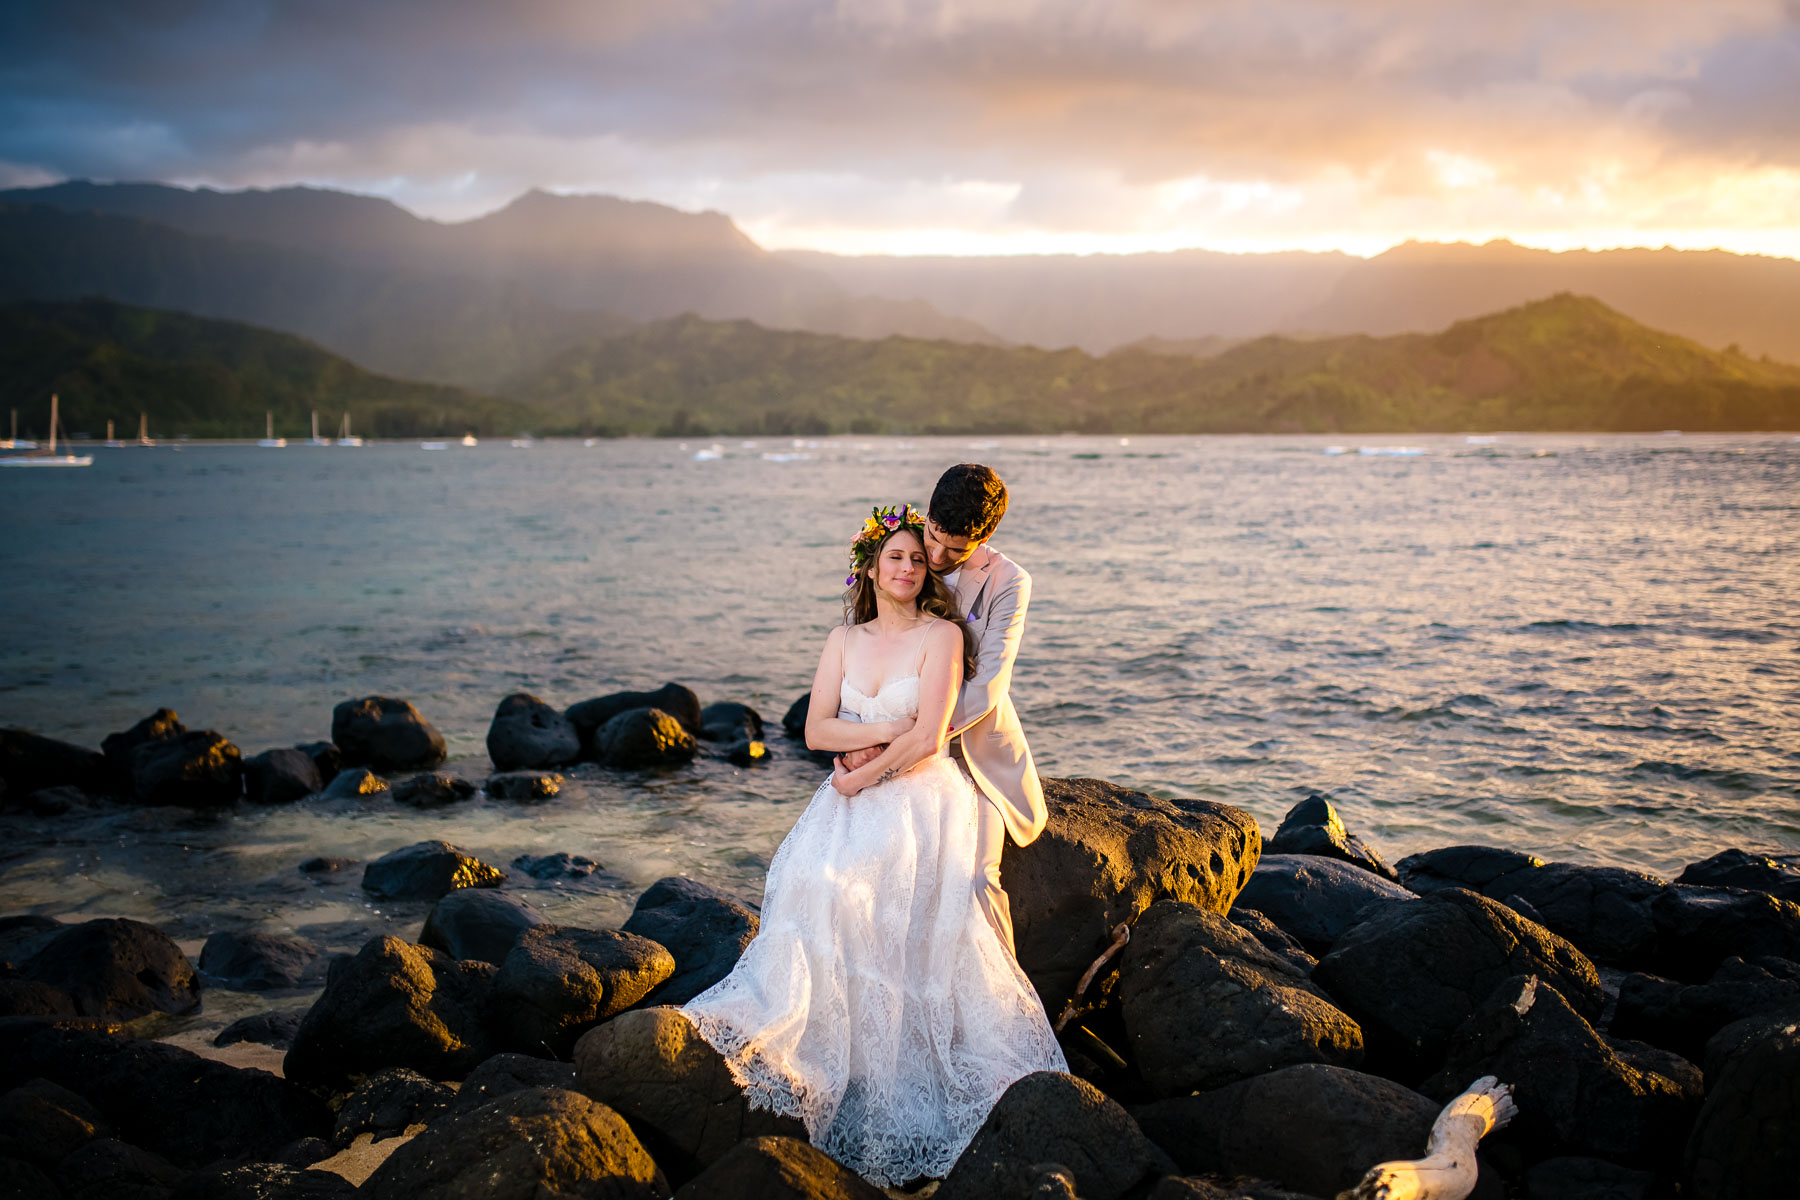 Wedding photography captured at its best - with these two lovers, standing side by side on one of the most important days of their lives.